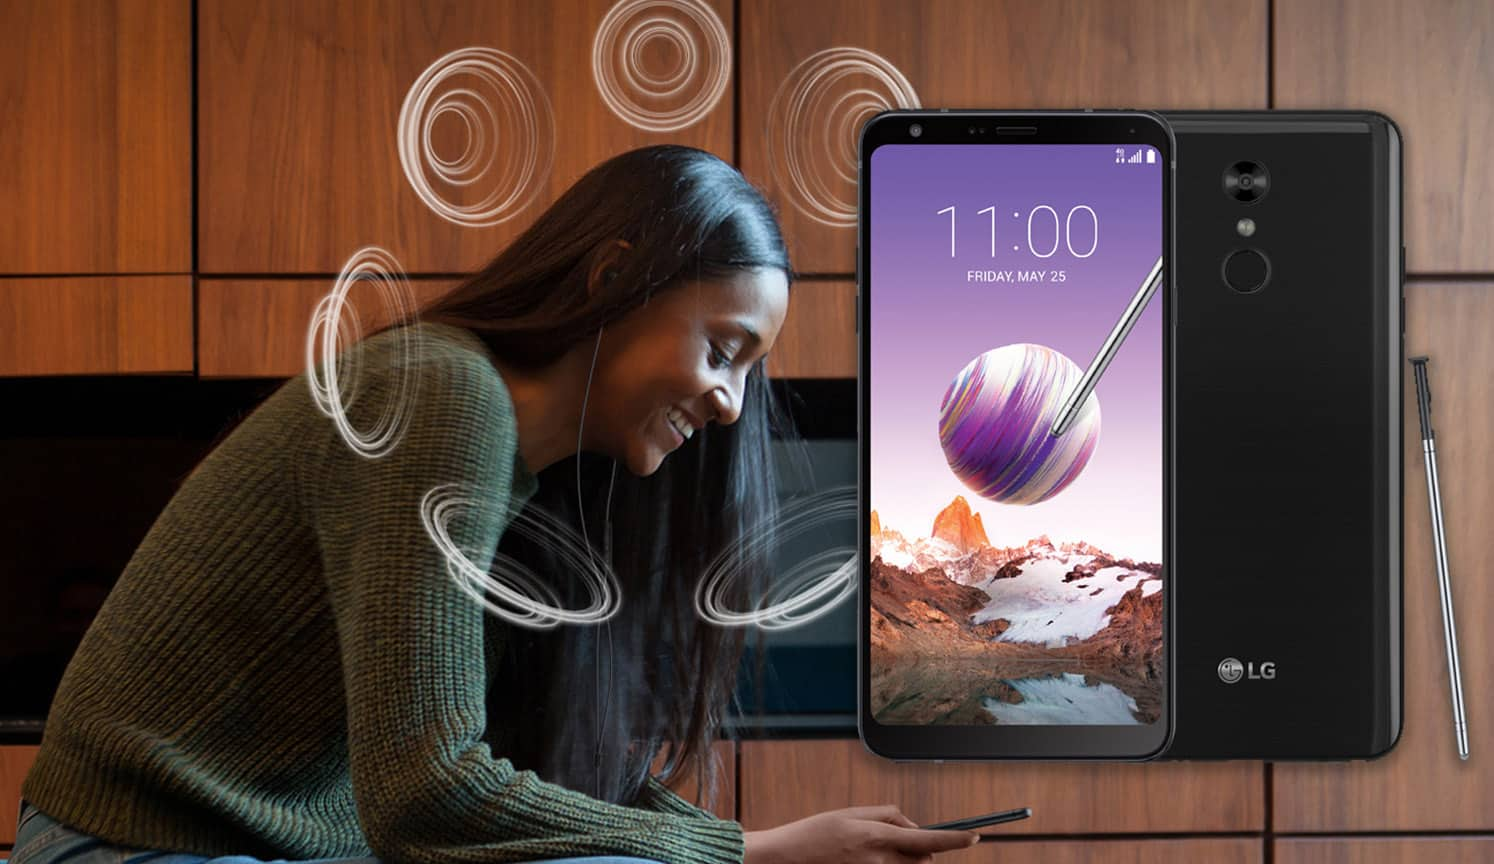 LG Smartphone Unlocked as the second related product of the Best Unlocked Smartphone